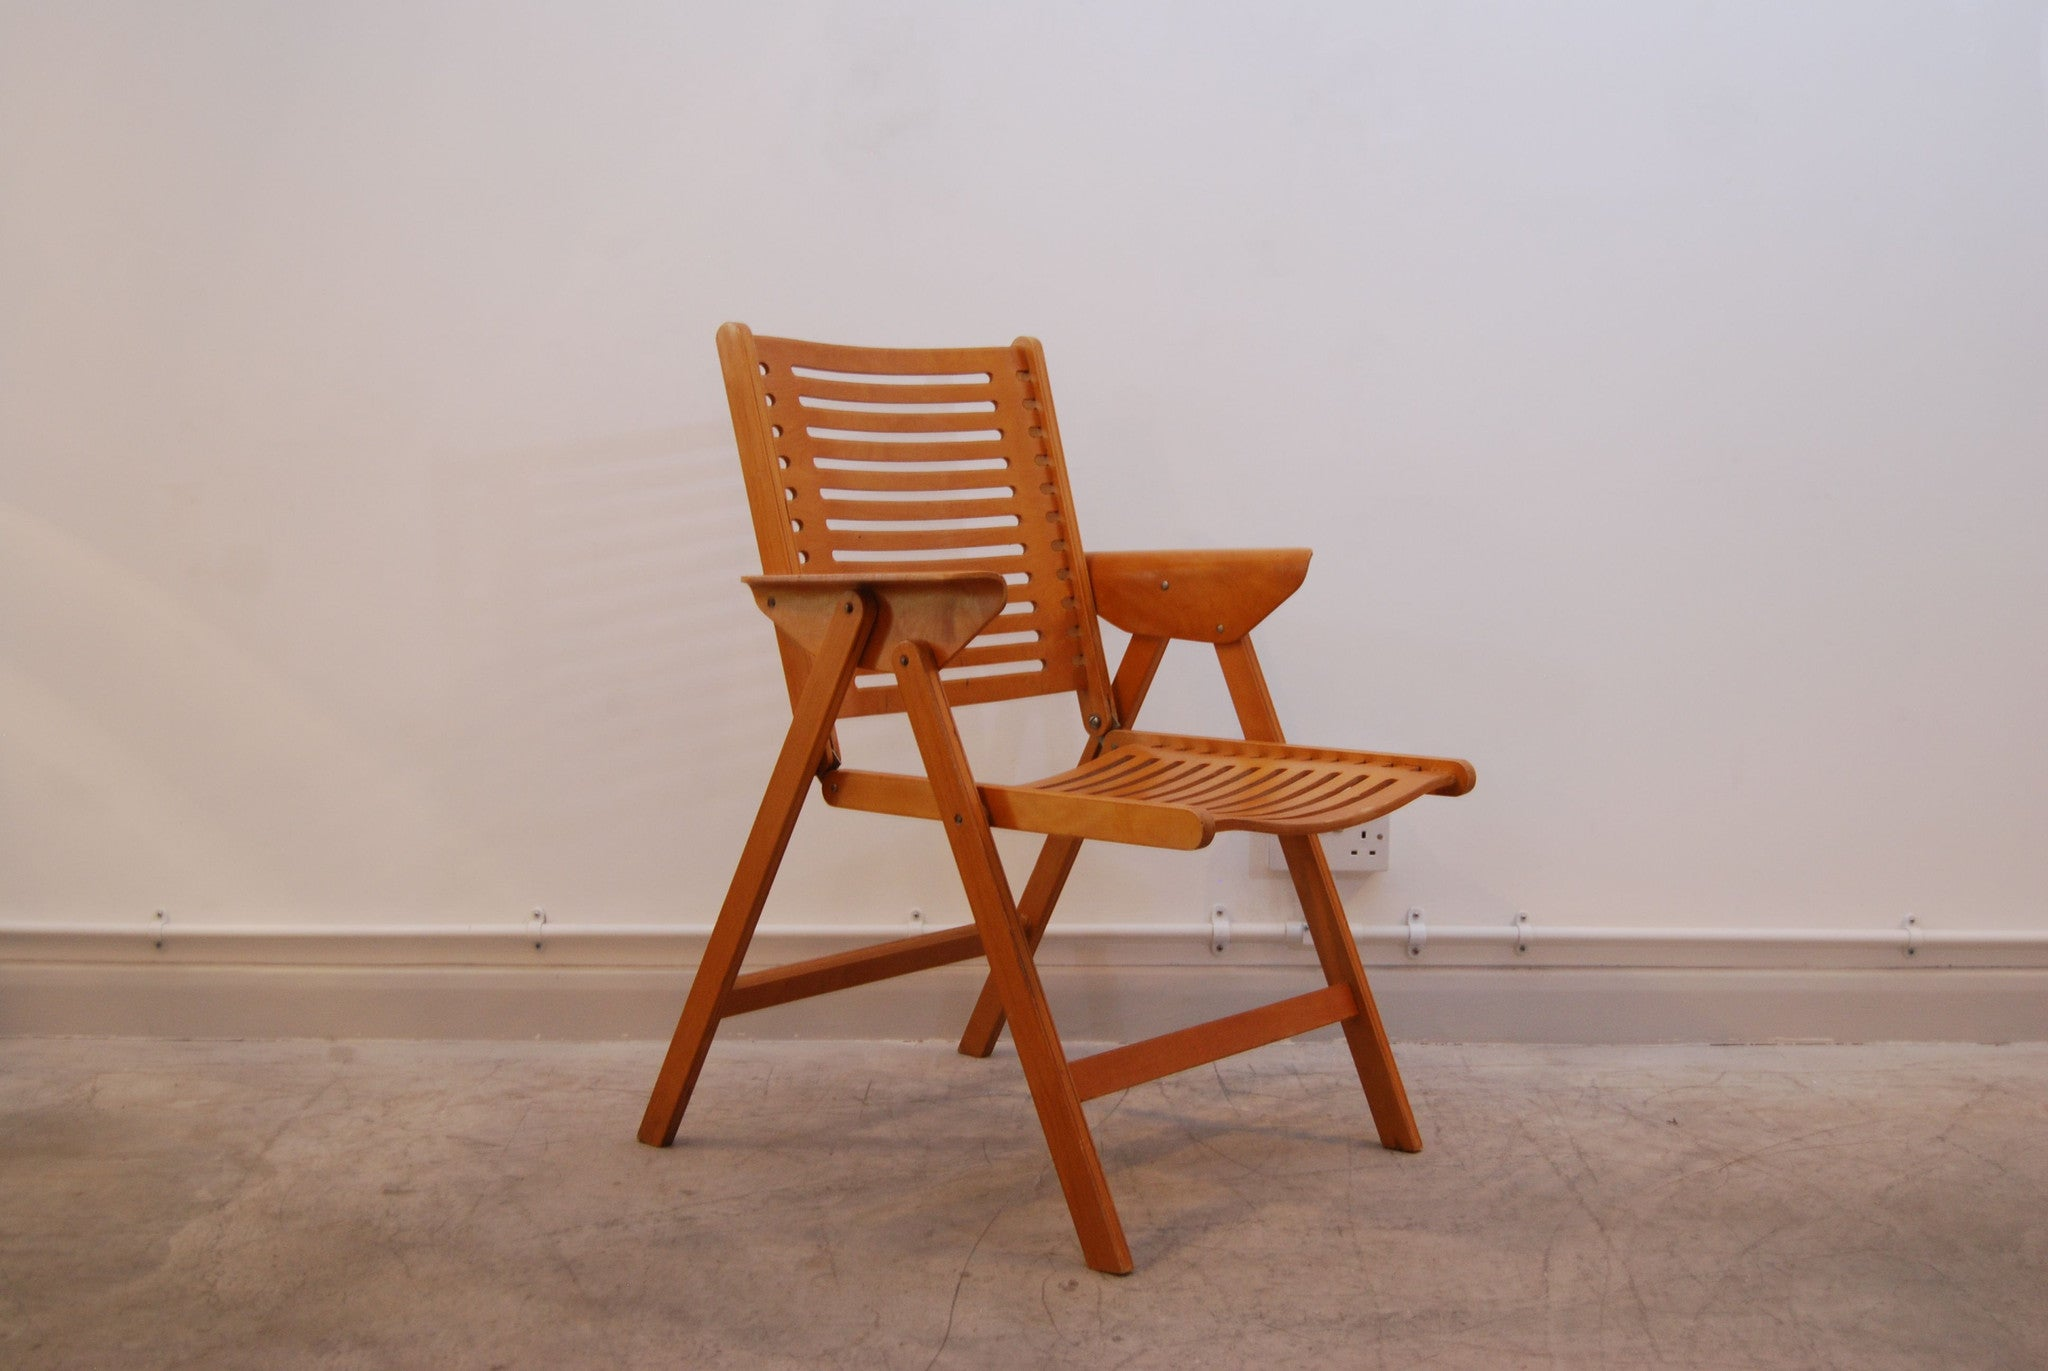 Chase & Sorensen Folding chair by Niko Kralj